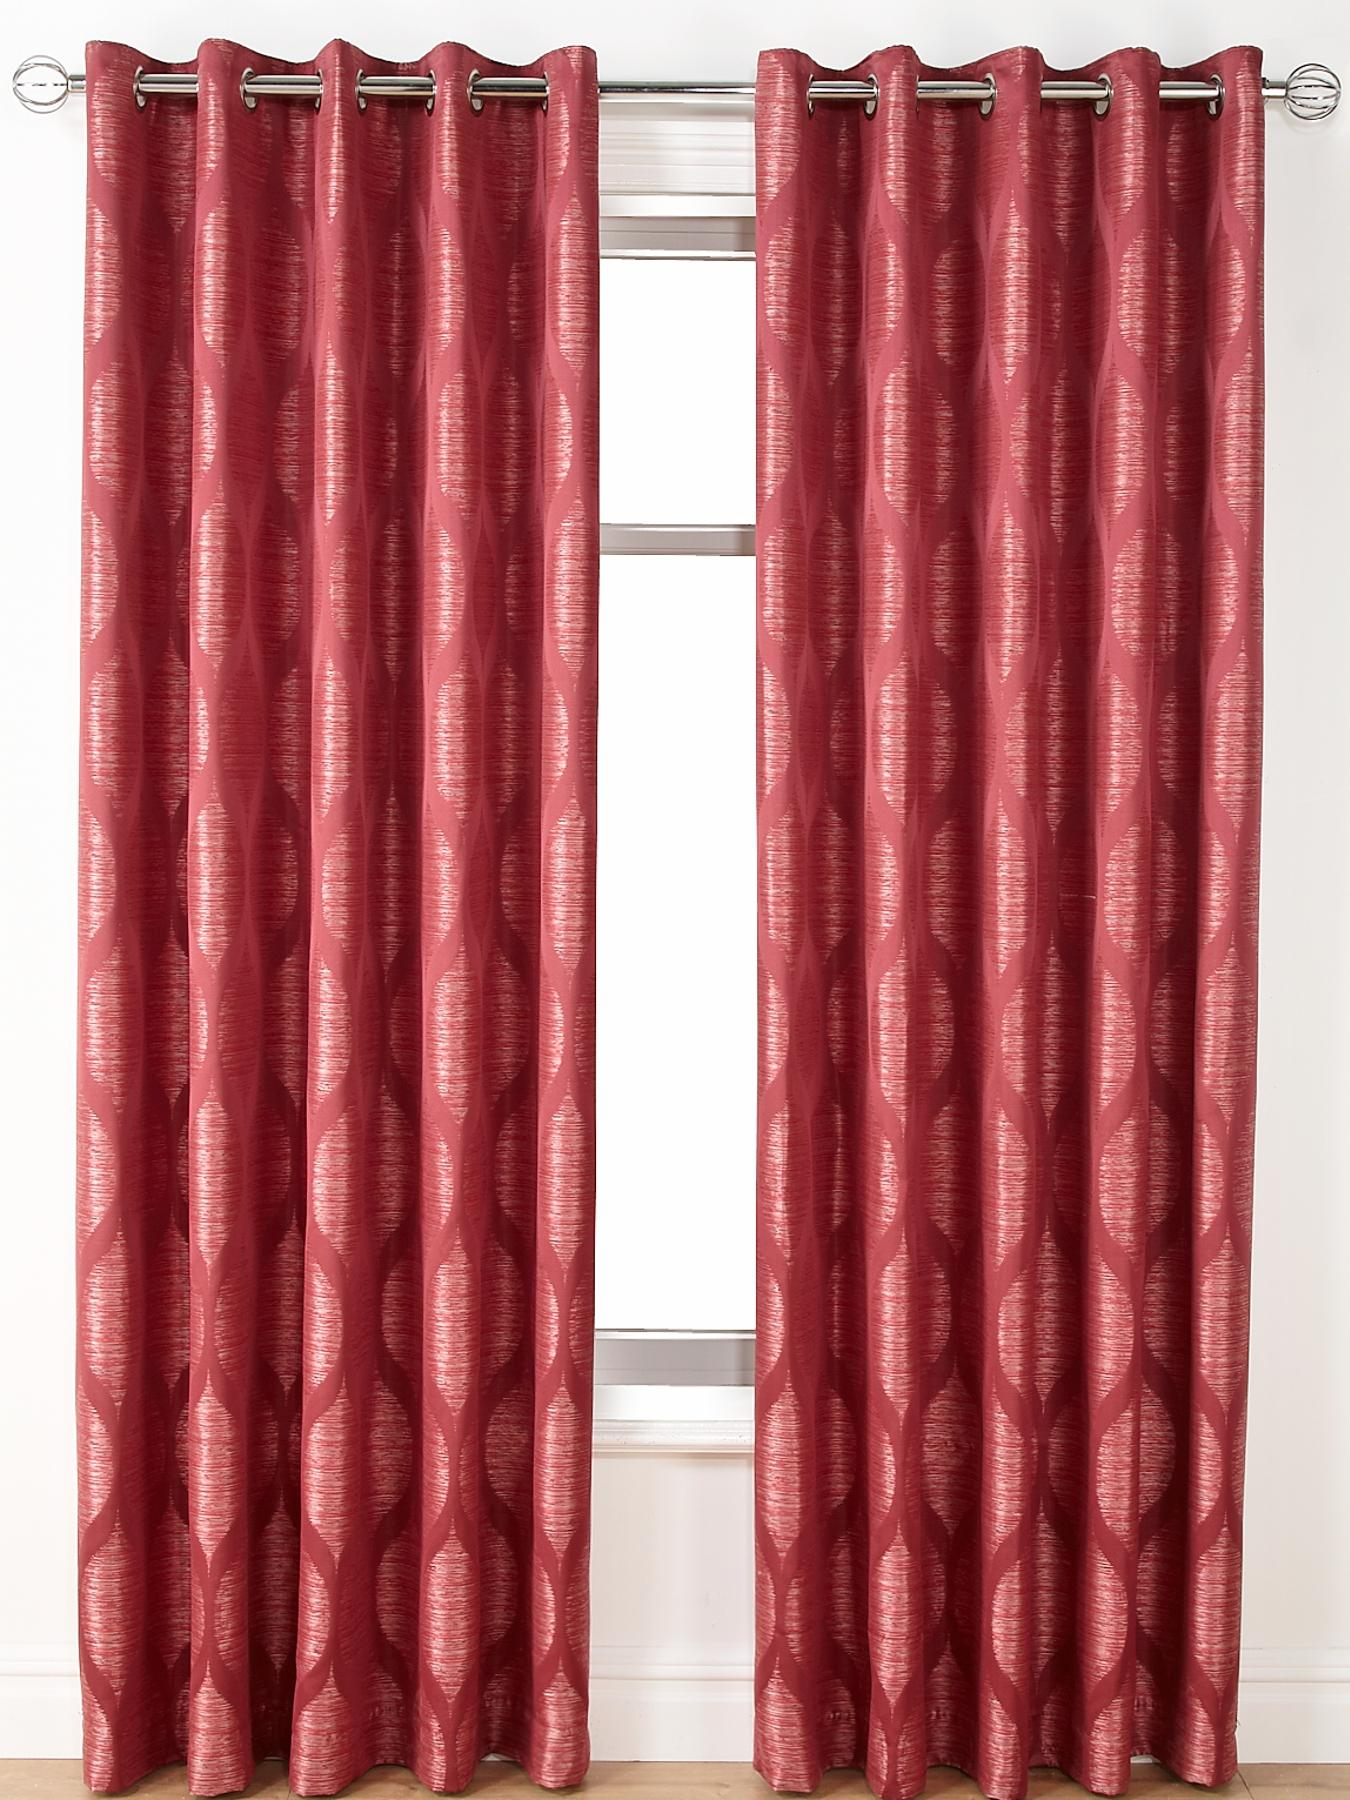 Ogee Jacquard Eyelet Curtains, Chocolate,Black.